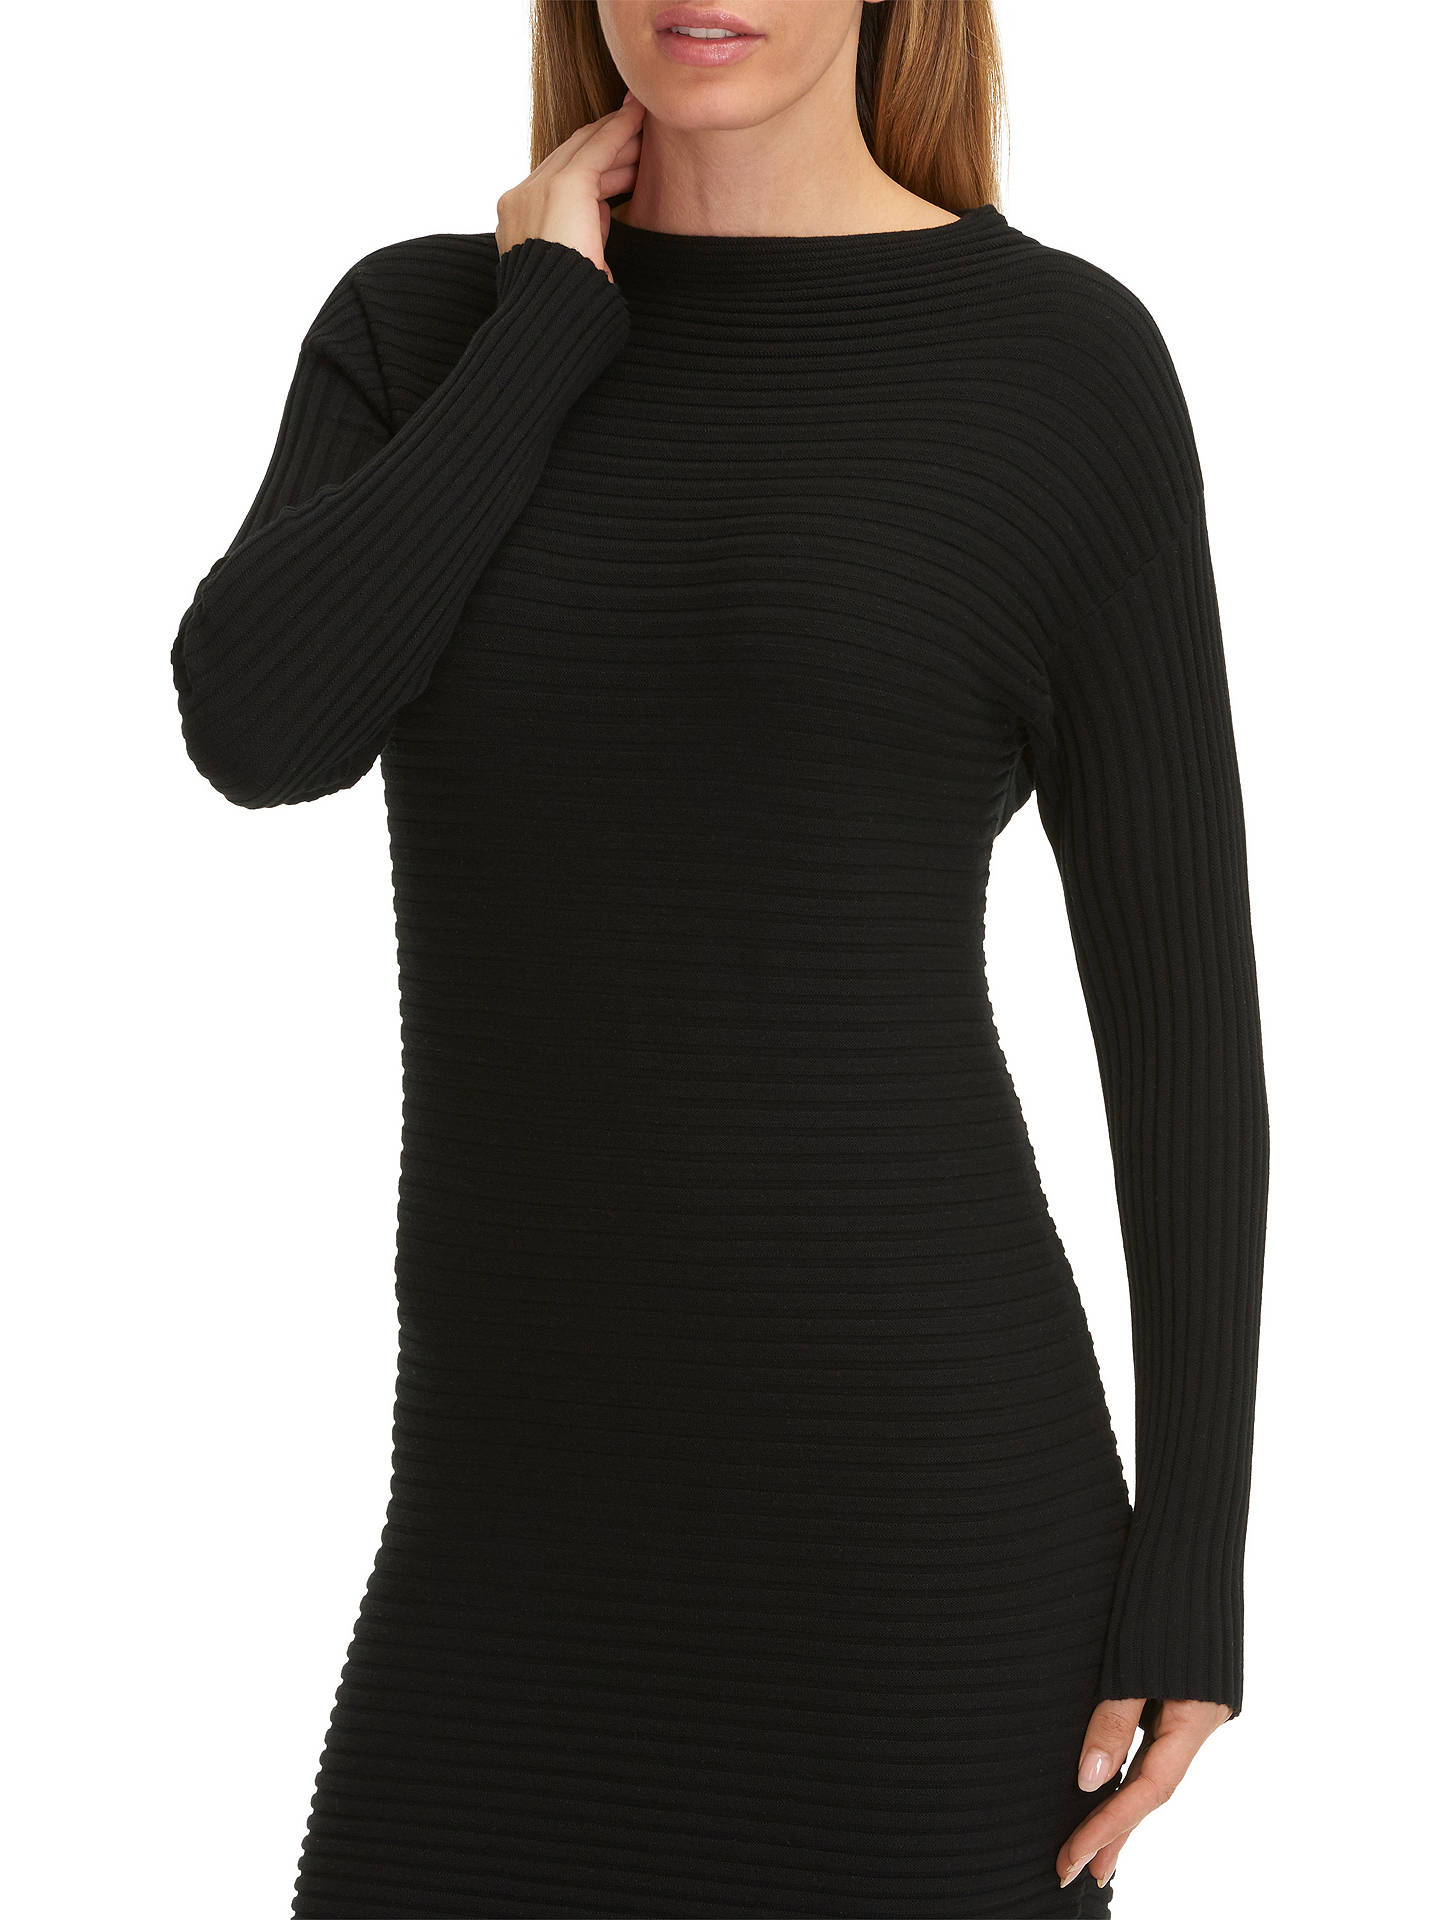 Buy Betty Barclay Ribbed Knit Dress, Black, 8 Online at johnlewis.com